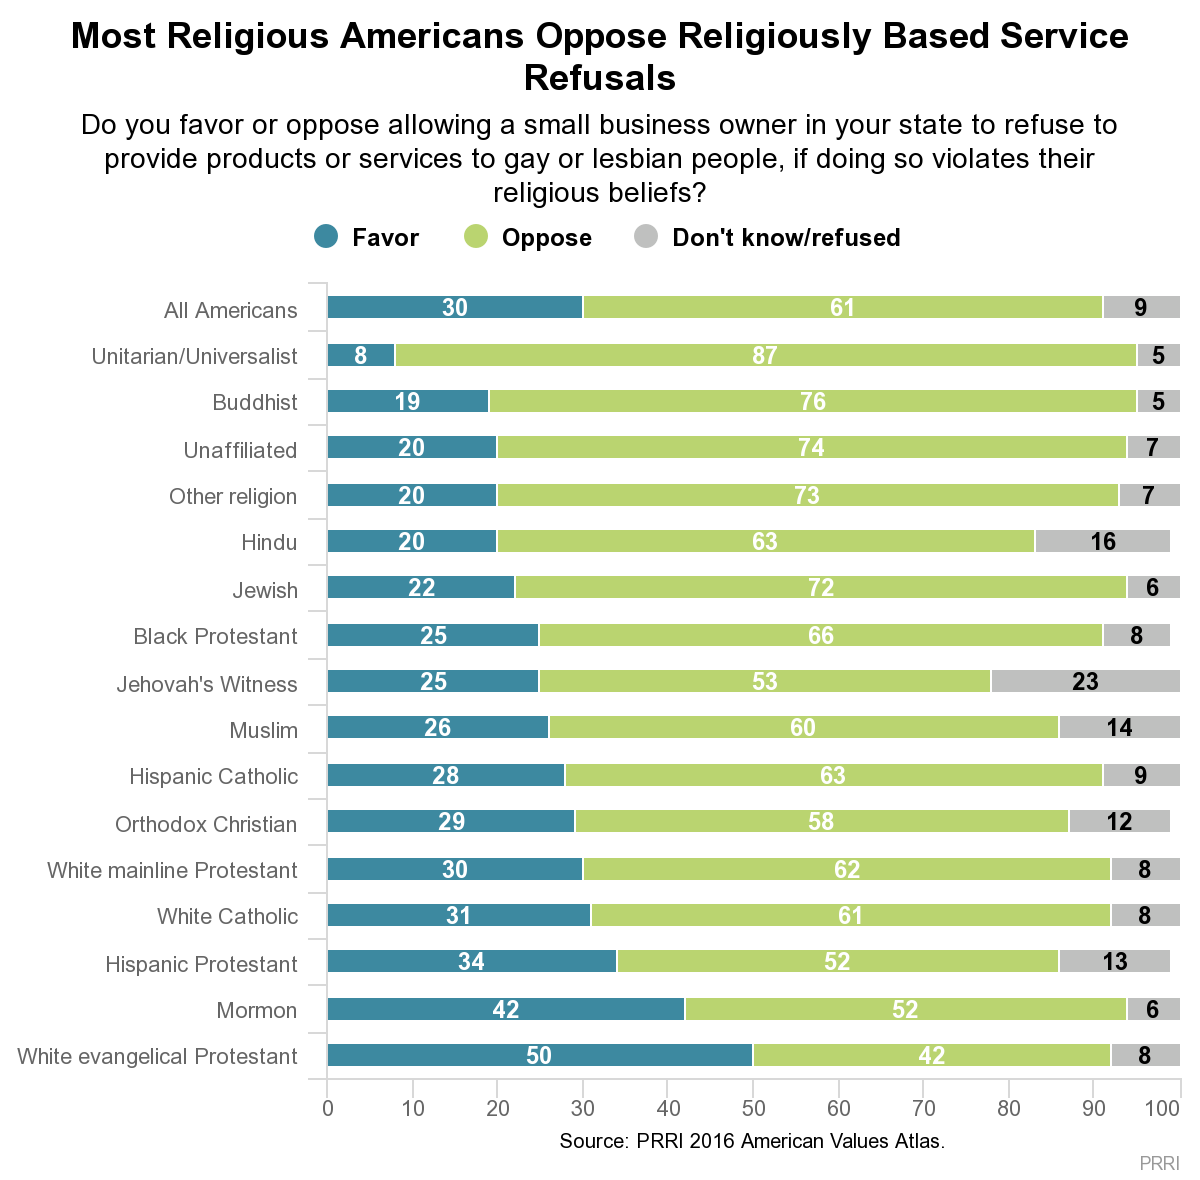 Most Religious Americans Oppose Religiously Based Service Refusal